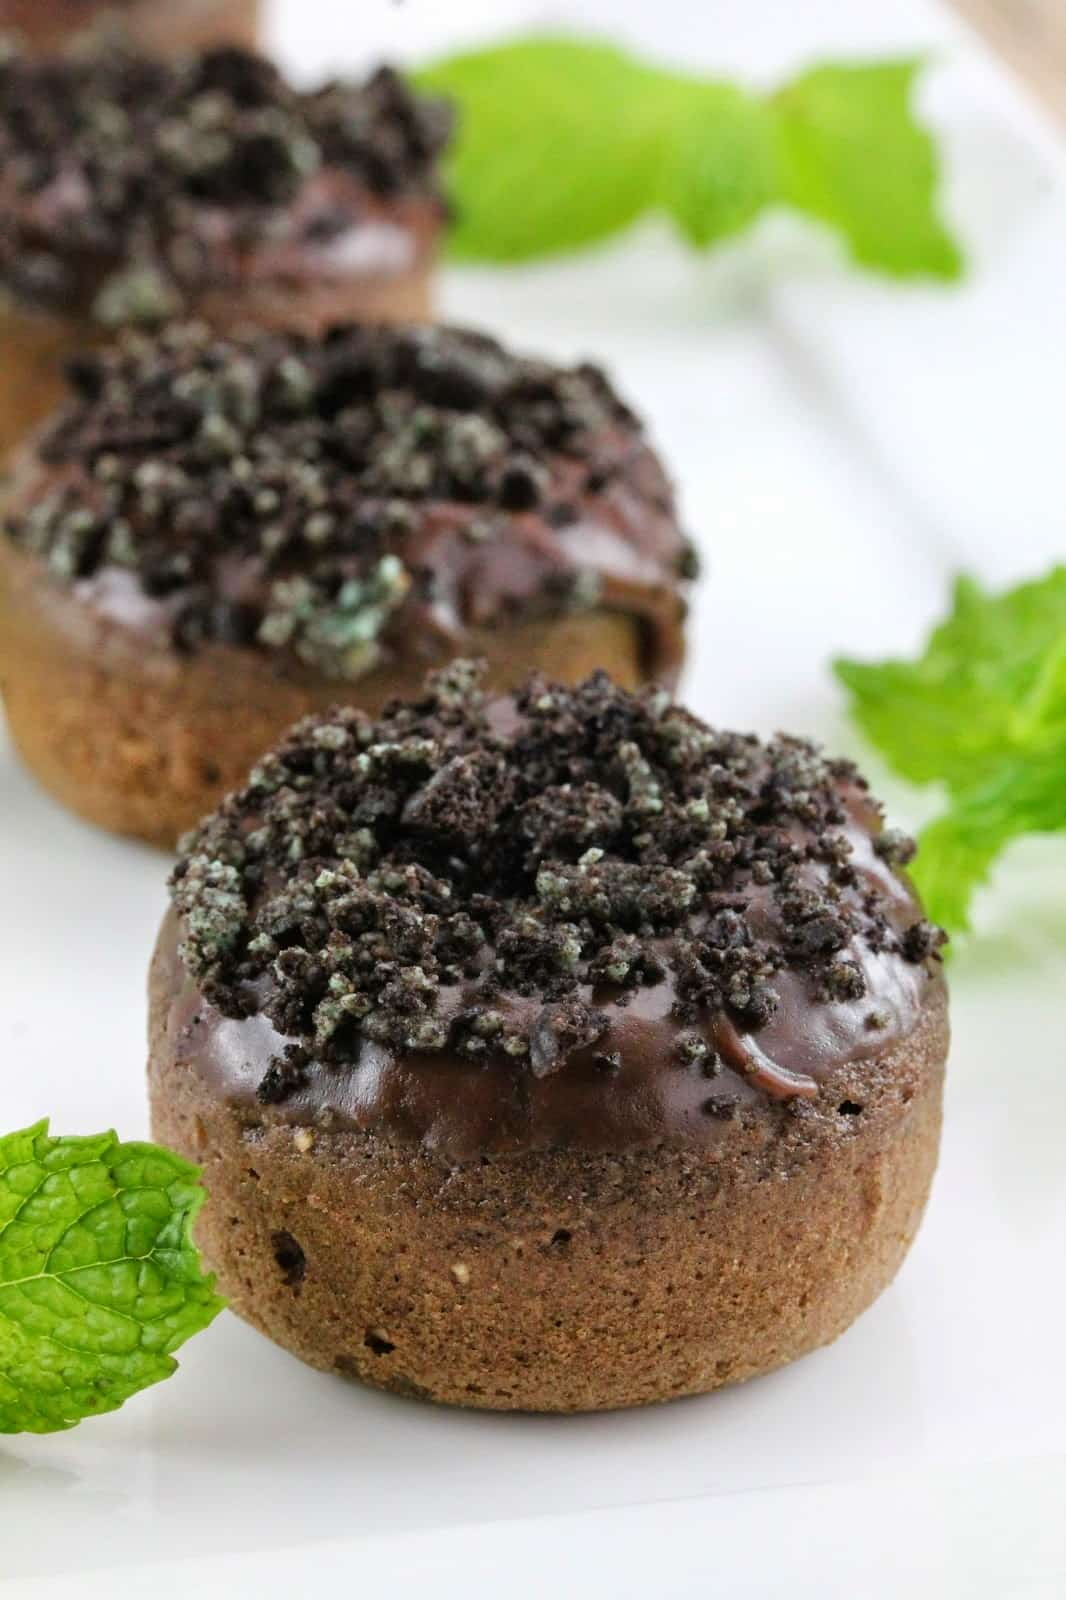 Chocolate donut with mint frosting.